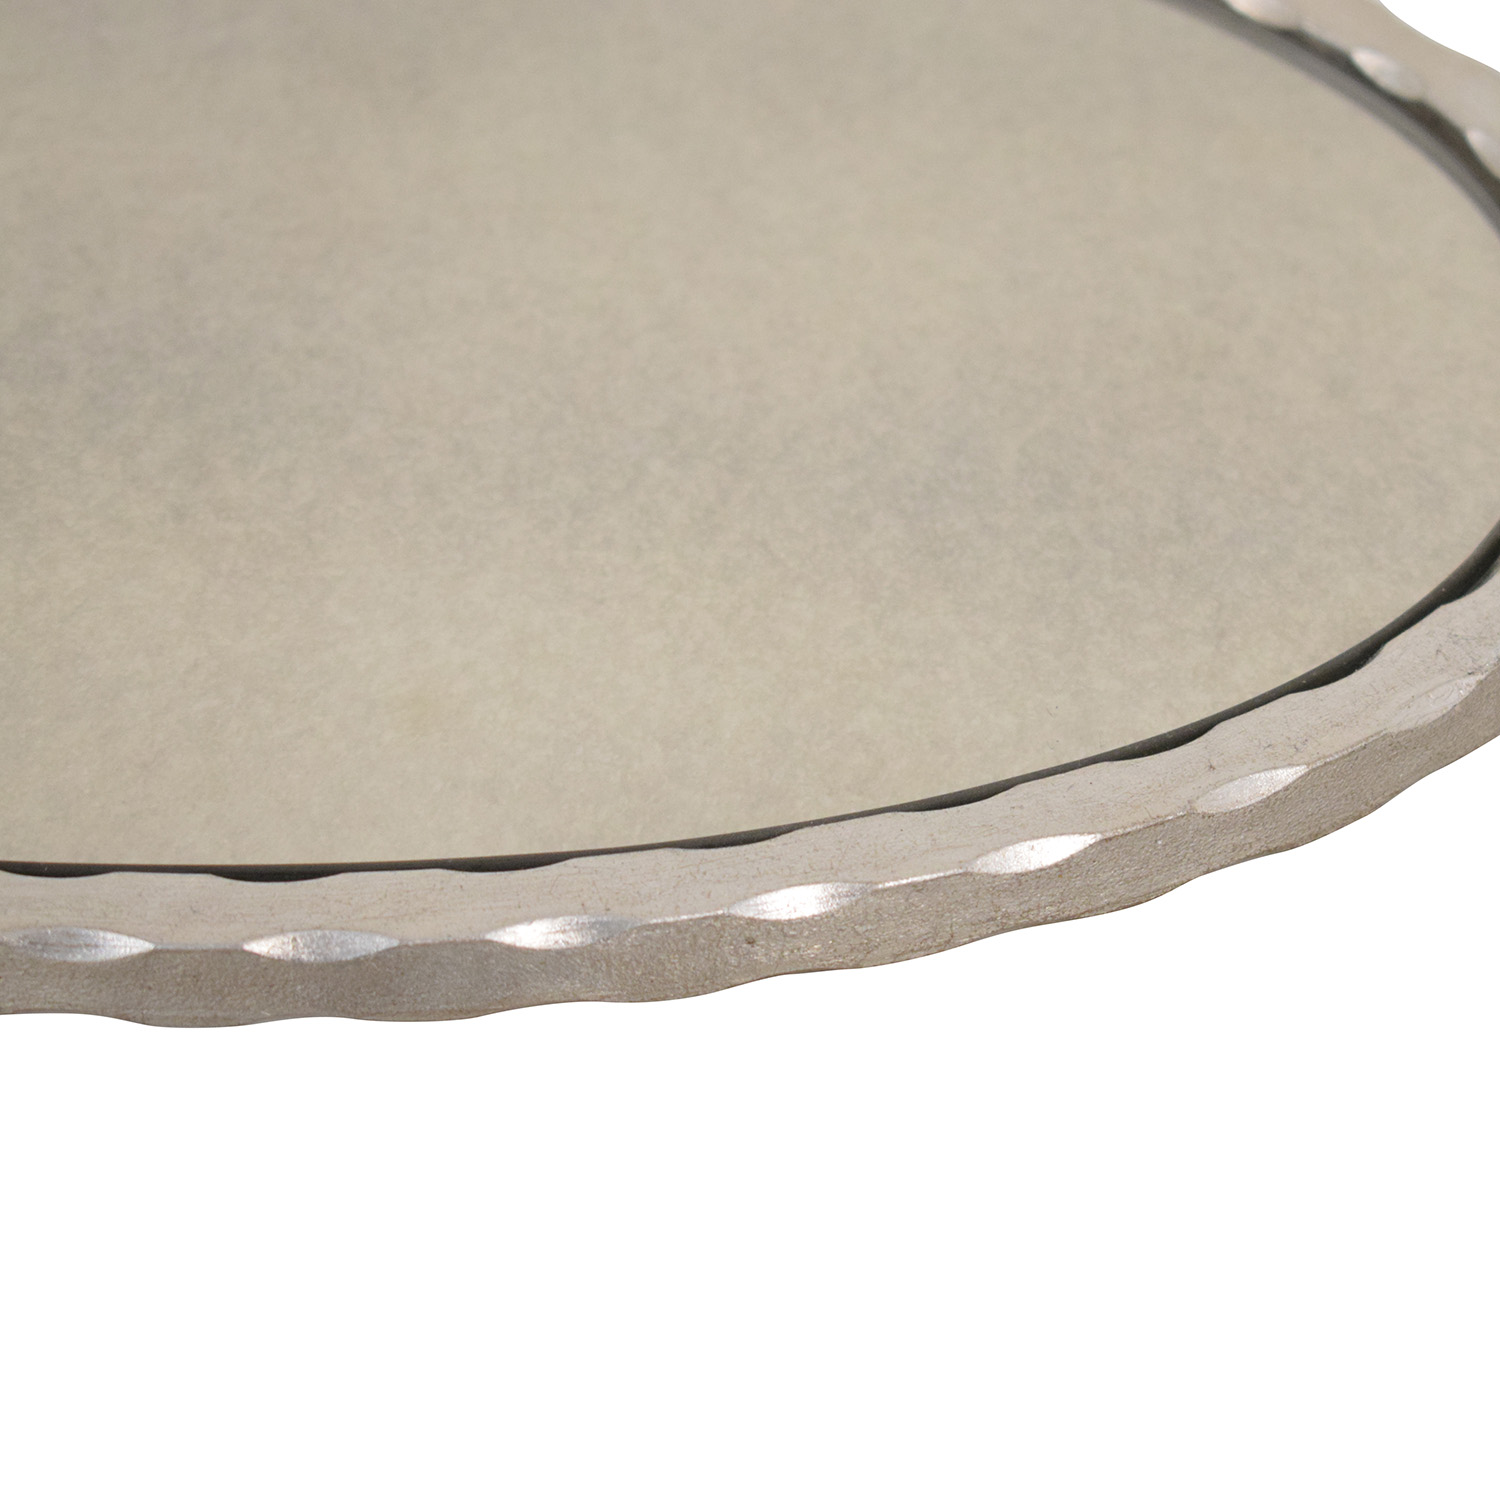 Round Decorative Side Table dimensions